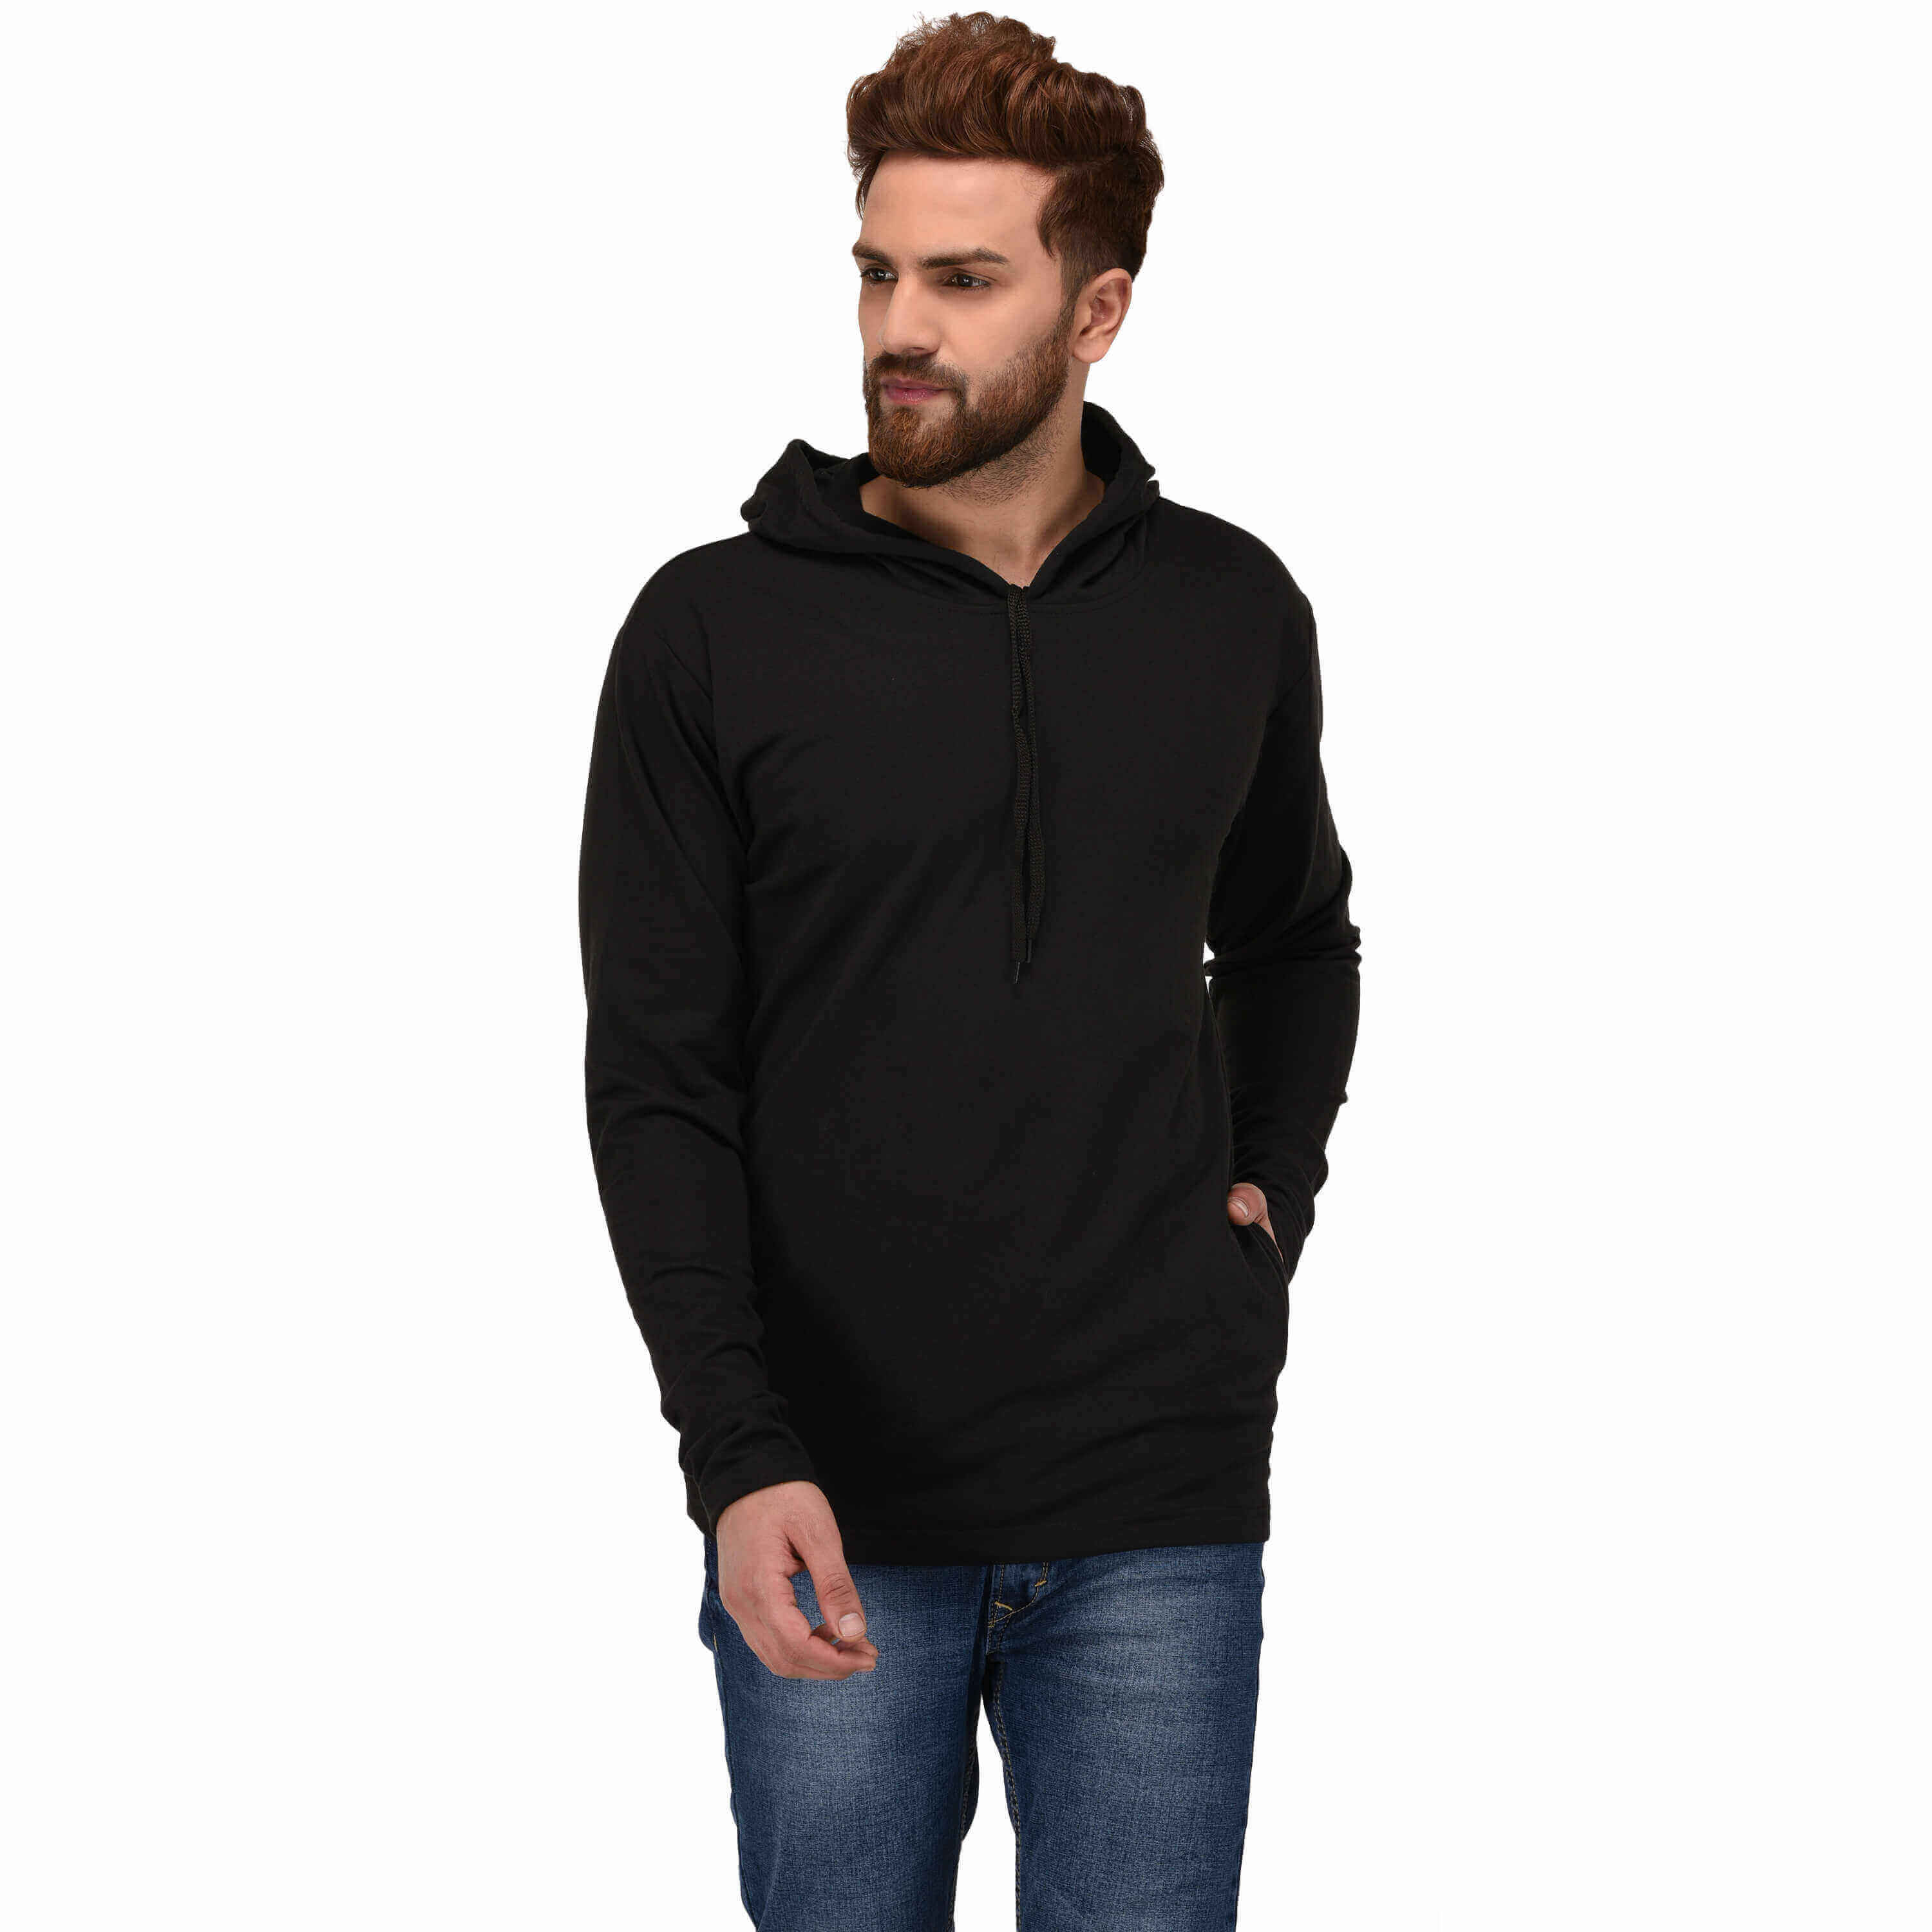 Sports Hoodies Manufacturers in Thiruvananthapuram